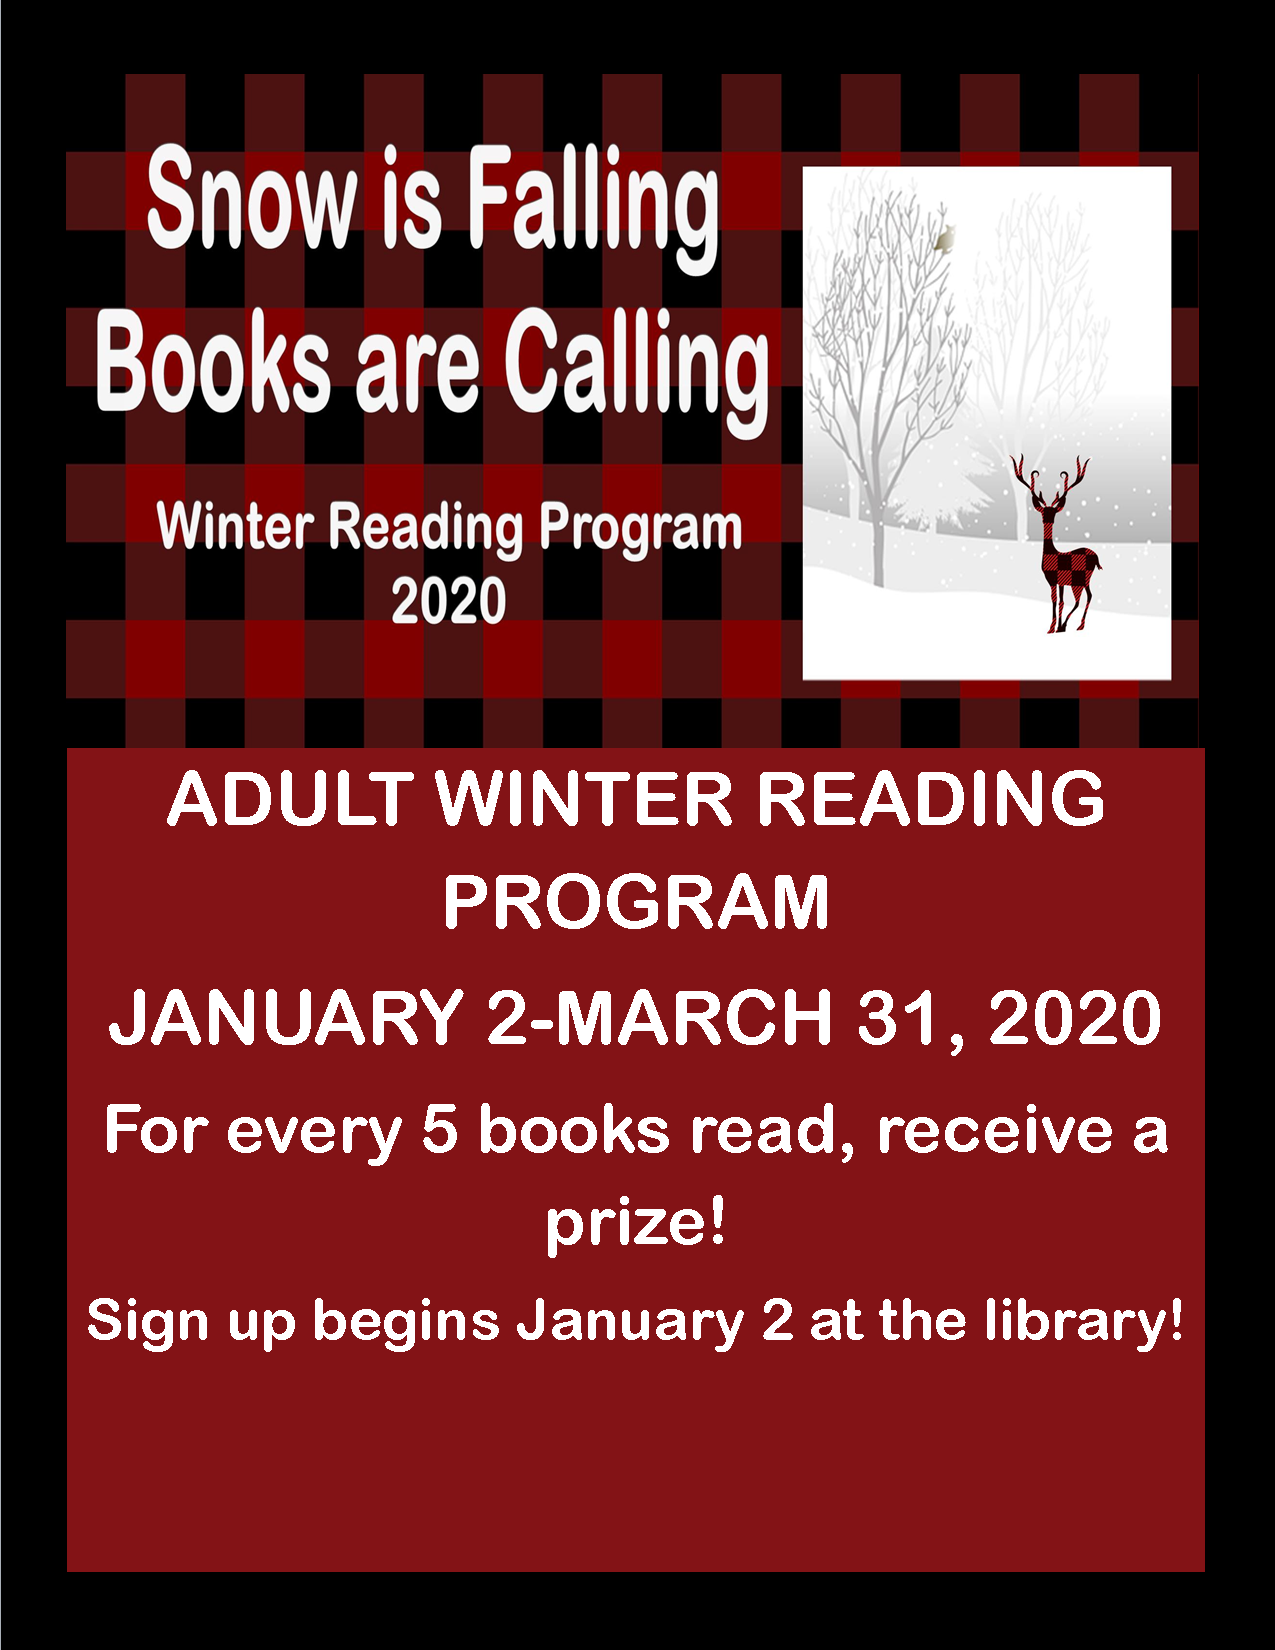 Our Winter Reading Program runs January 2 through March 31, 2020. For every five books read, receive a prize. Sign-up begins January 2.